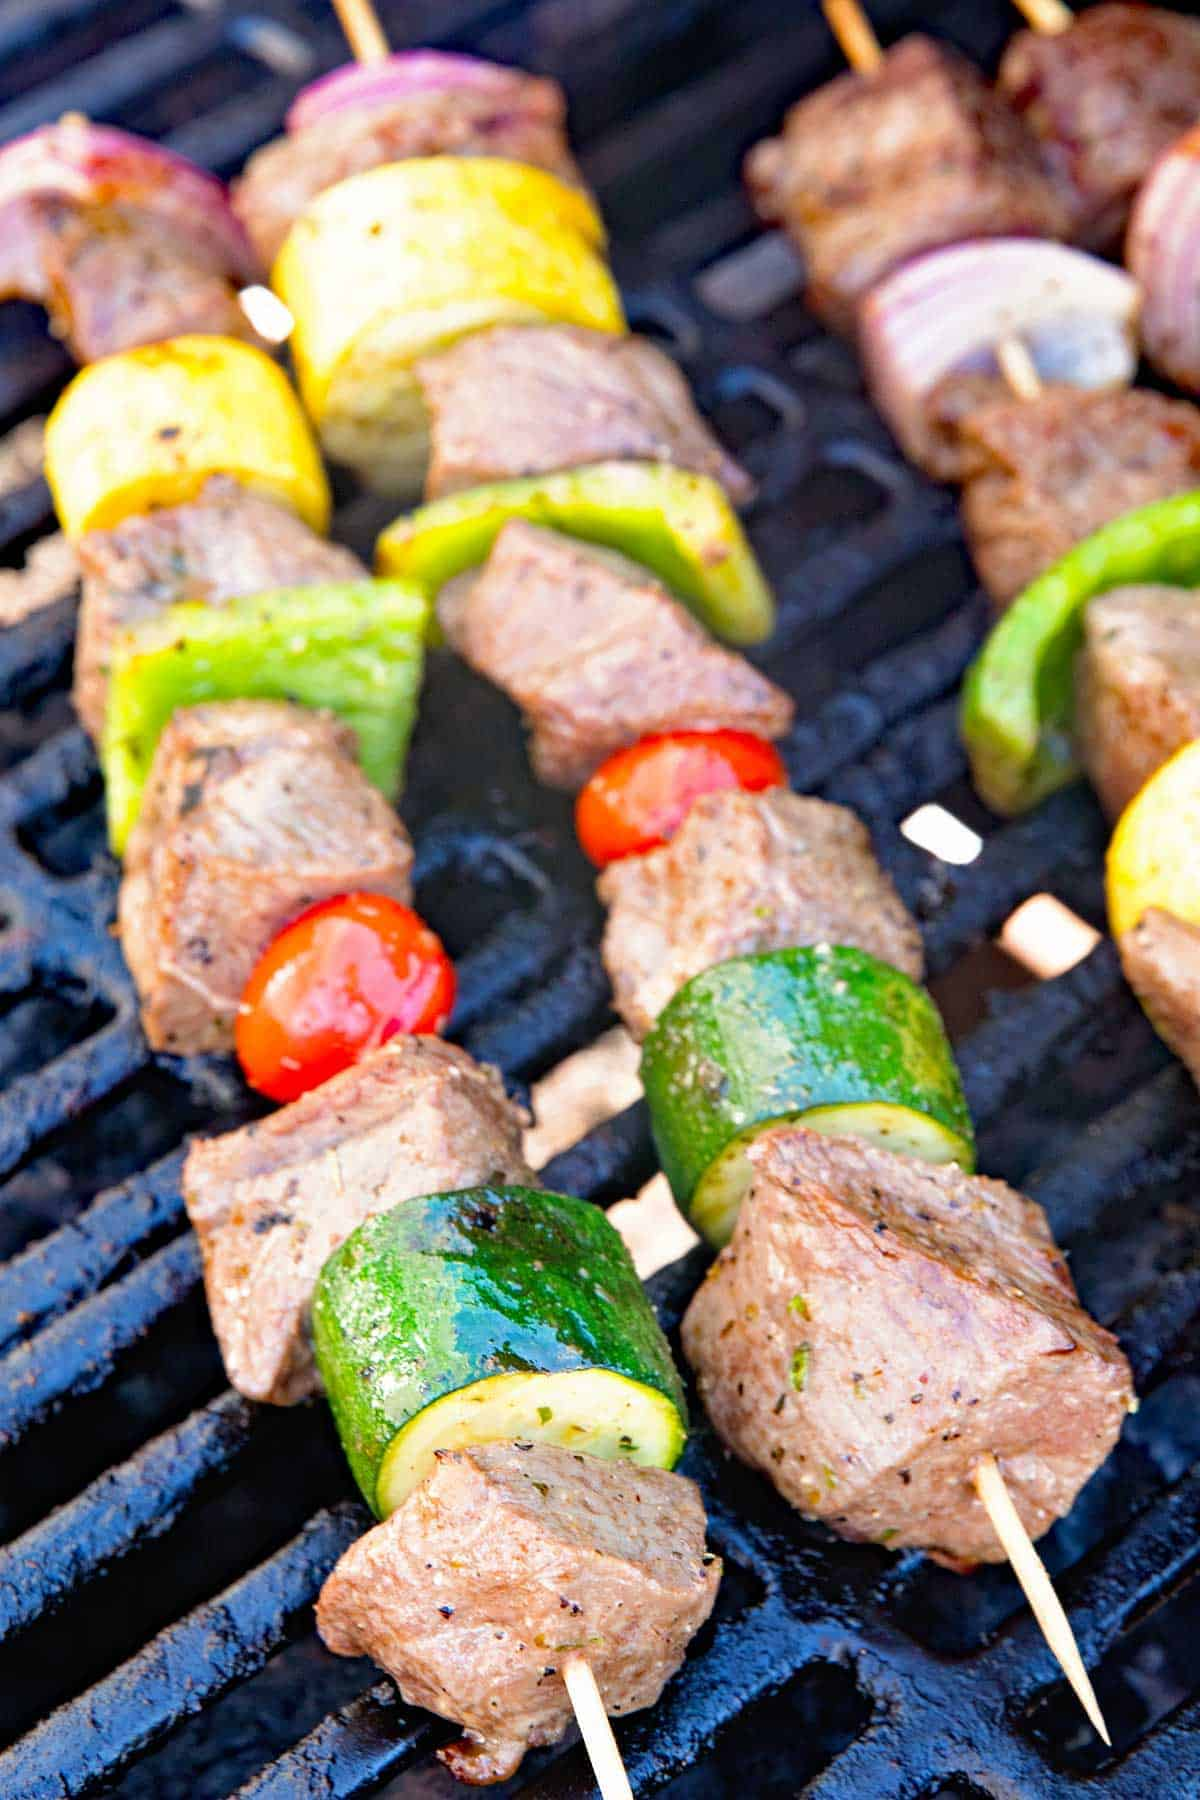 Marinated Grilled Vegetable and Steak Kabobs Grilled